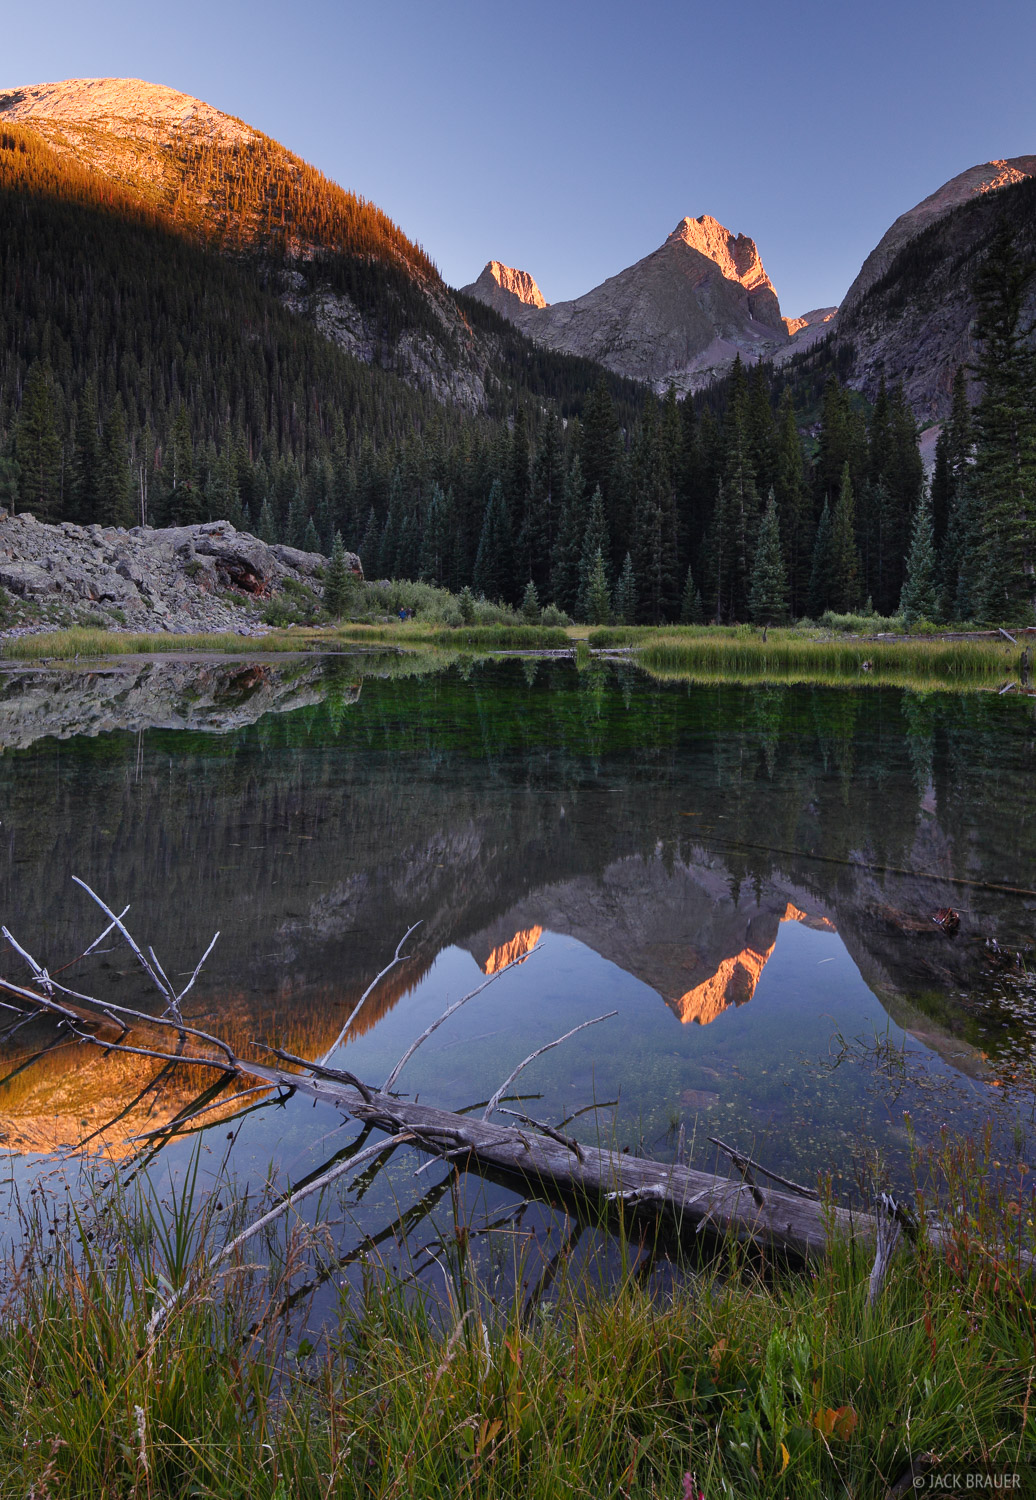 Sunset light on Arrow Peak, reflected in the Beaver Ponds along Elk Creek.